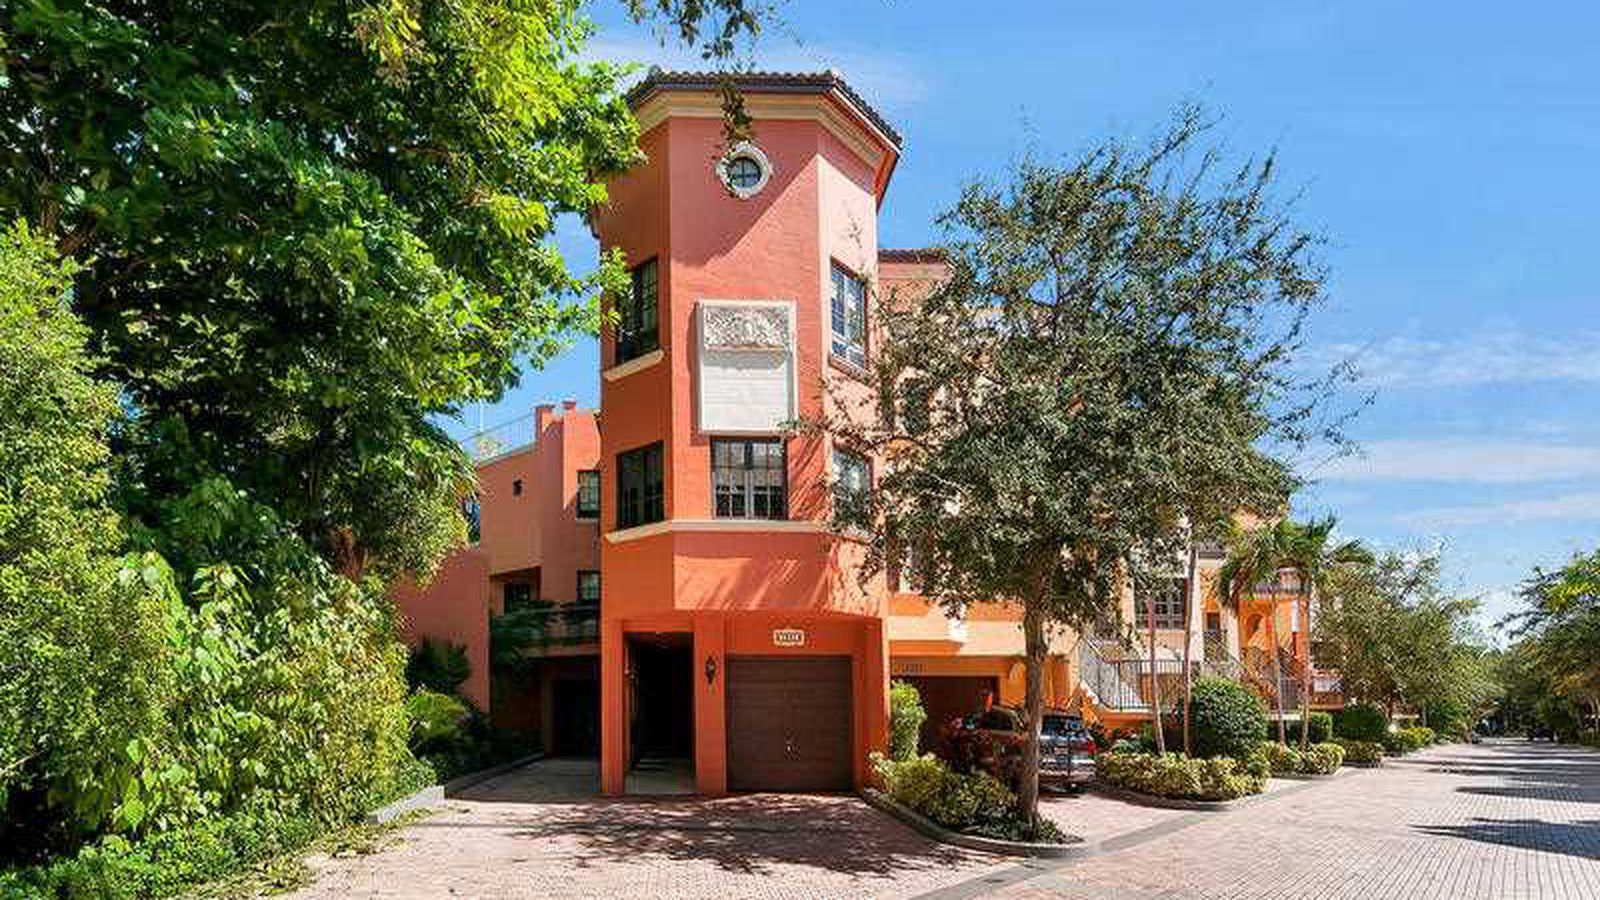 Tour Mark Richt S New Home In Coconut Grove Curbed Miami